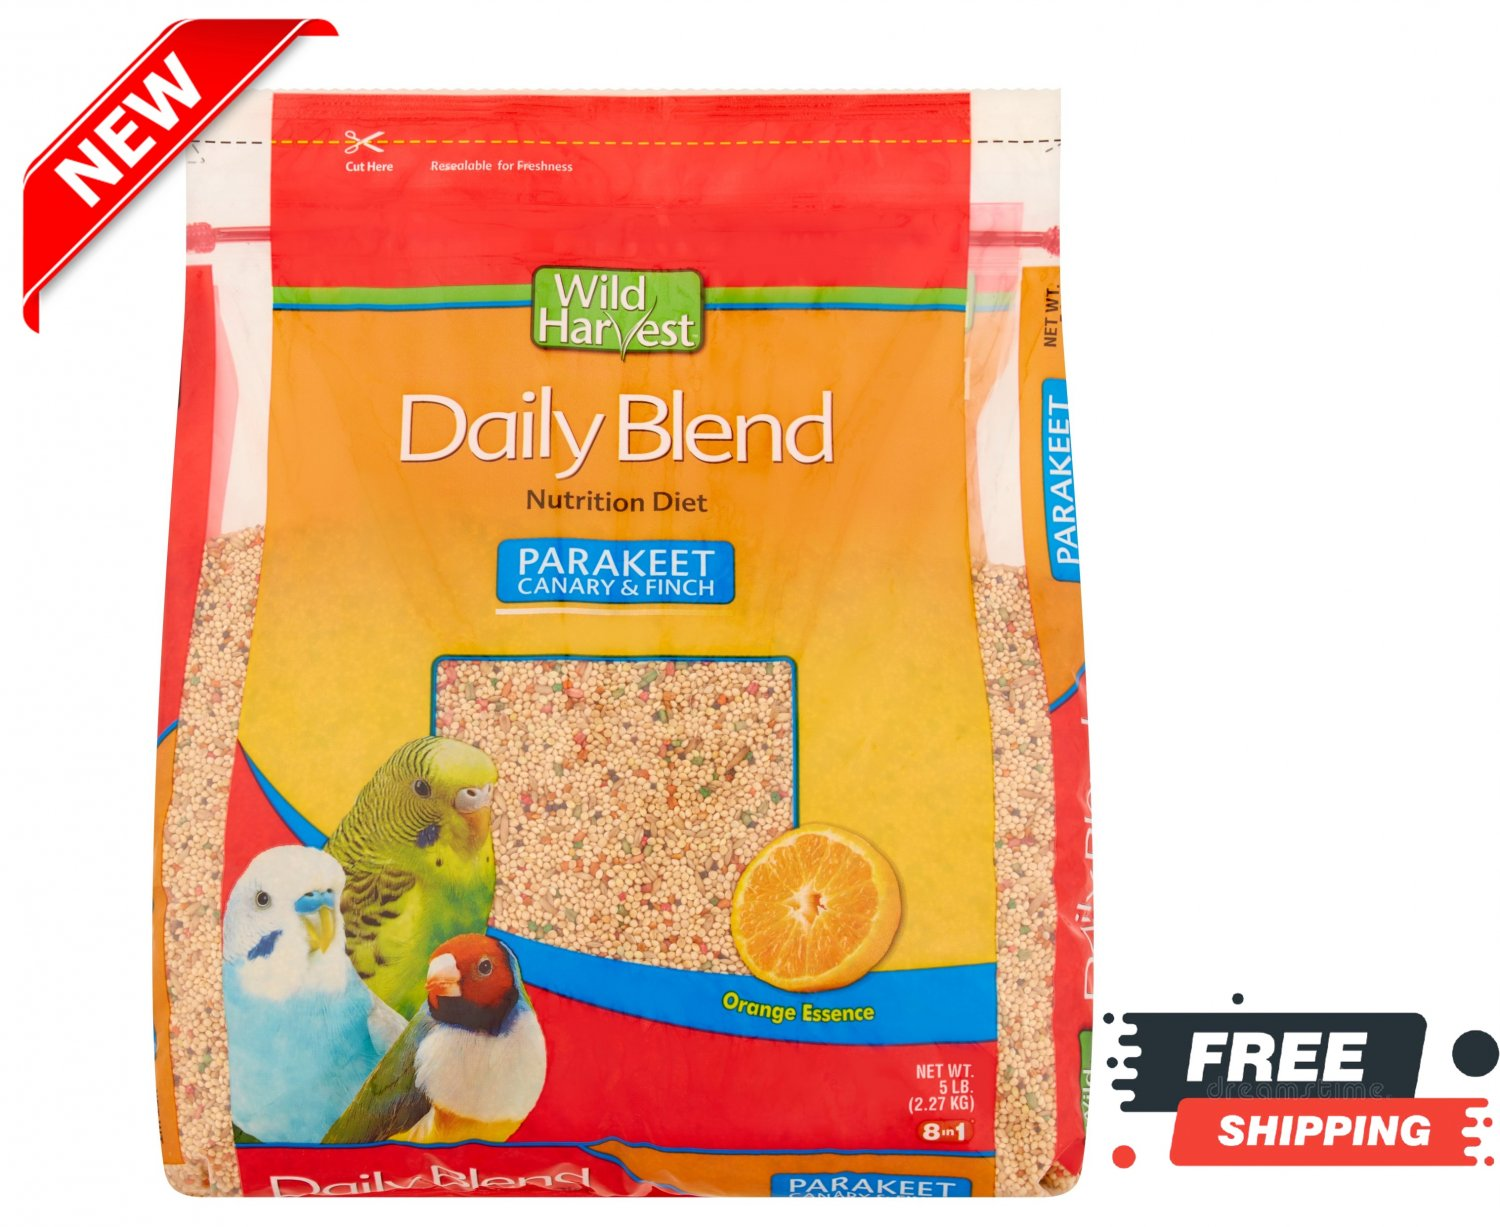 5 Pound Daily Blend Nutrition Feed Food for Parakeet Canary Finch Wild Harvest NEW